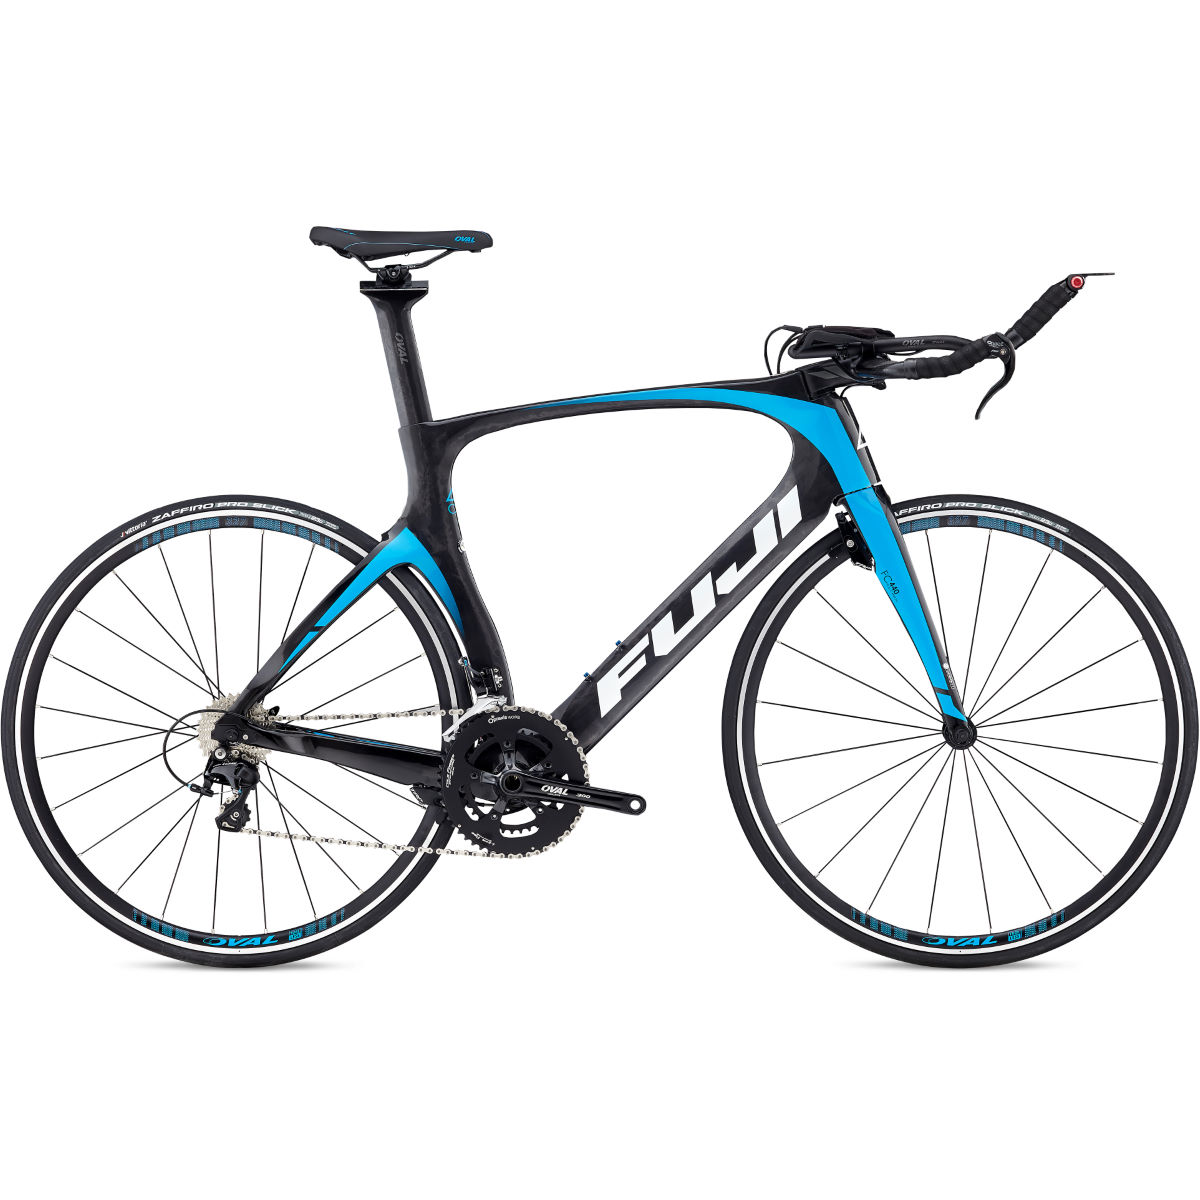 Vélo de route Fuji Norcom Straight 2.3 (2018) - 51cm Stock Bike